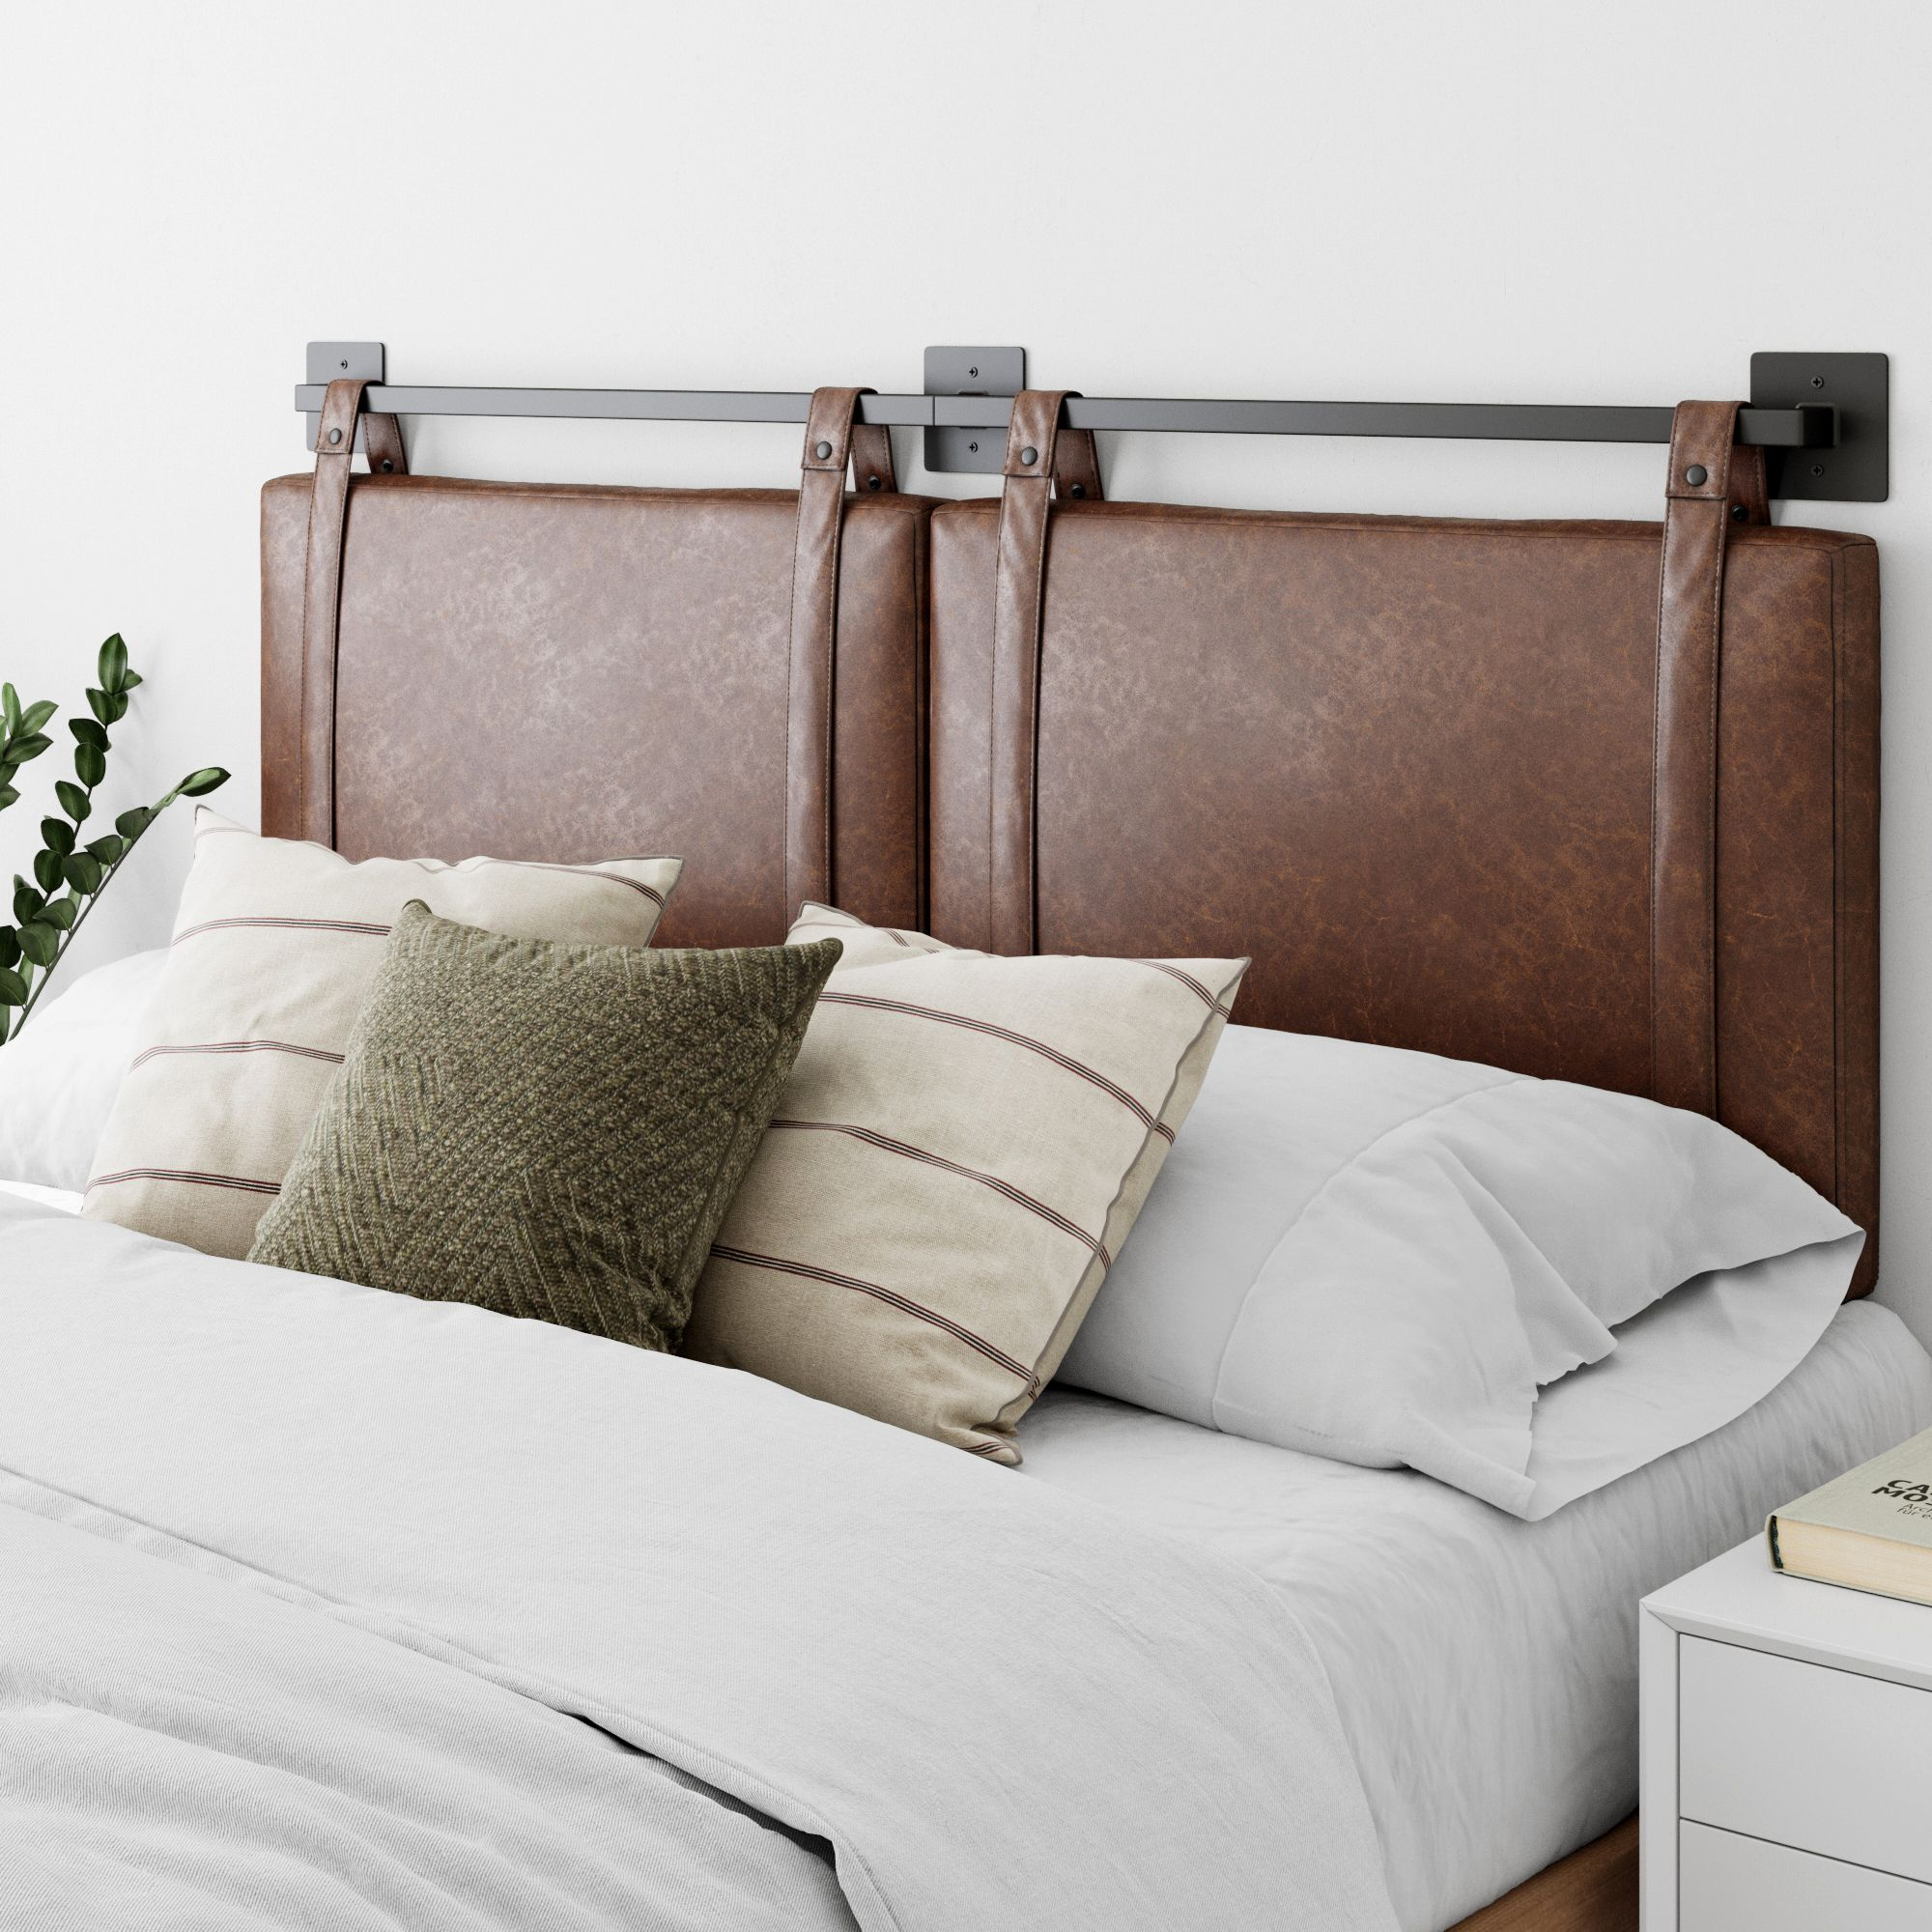 Nathan James Harlow King Wall Mount Headboard Faux Leather Upholstered Headboard Adjustable Height Vintage Brown Pu Leather Straps With Black Matte Metal Rail In 2020 Upholstered Headboard Gray Upholstered Headboard Wall